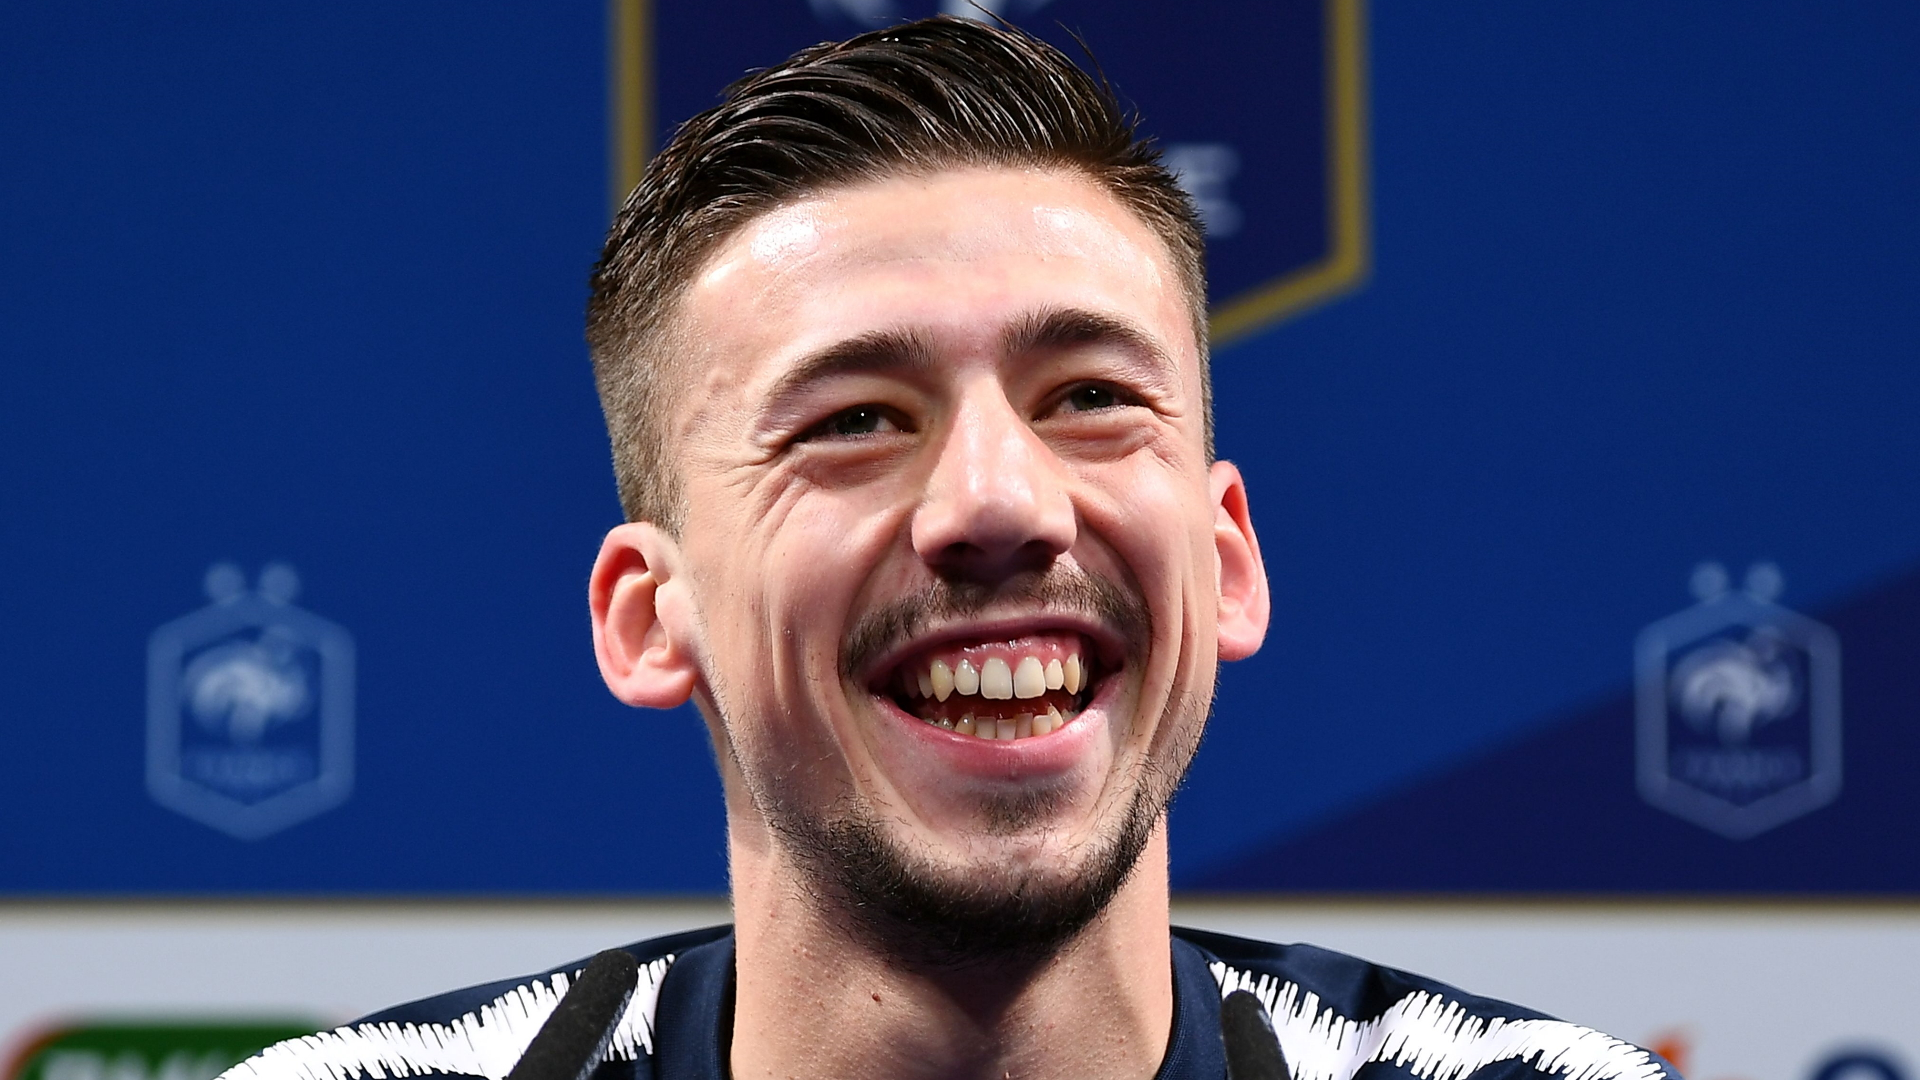 Barca's Lenglet praised by France boss Deschamps after solid international showing